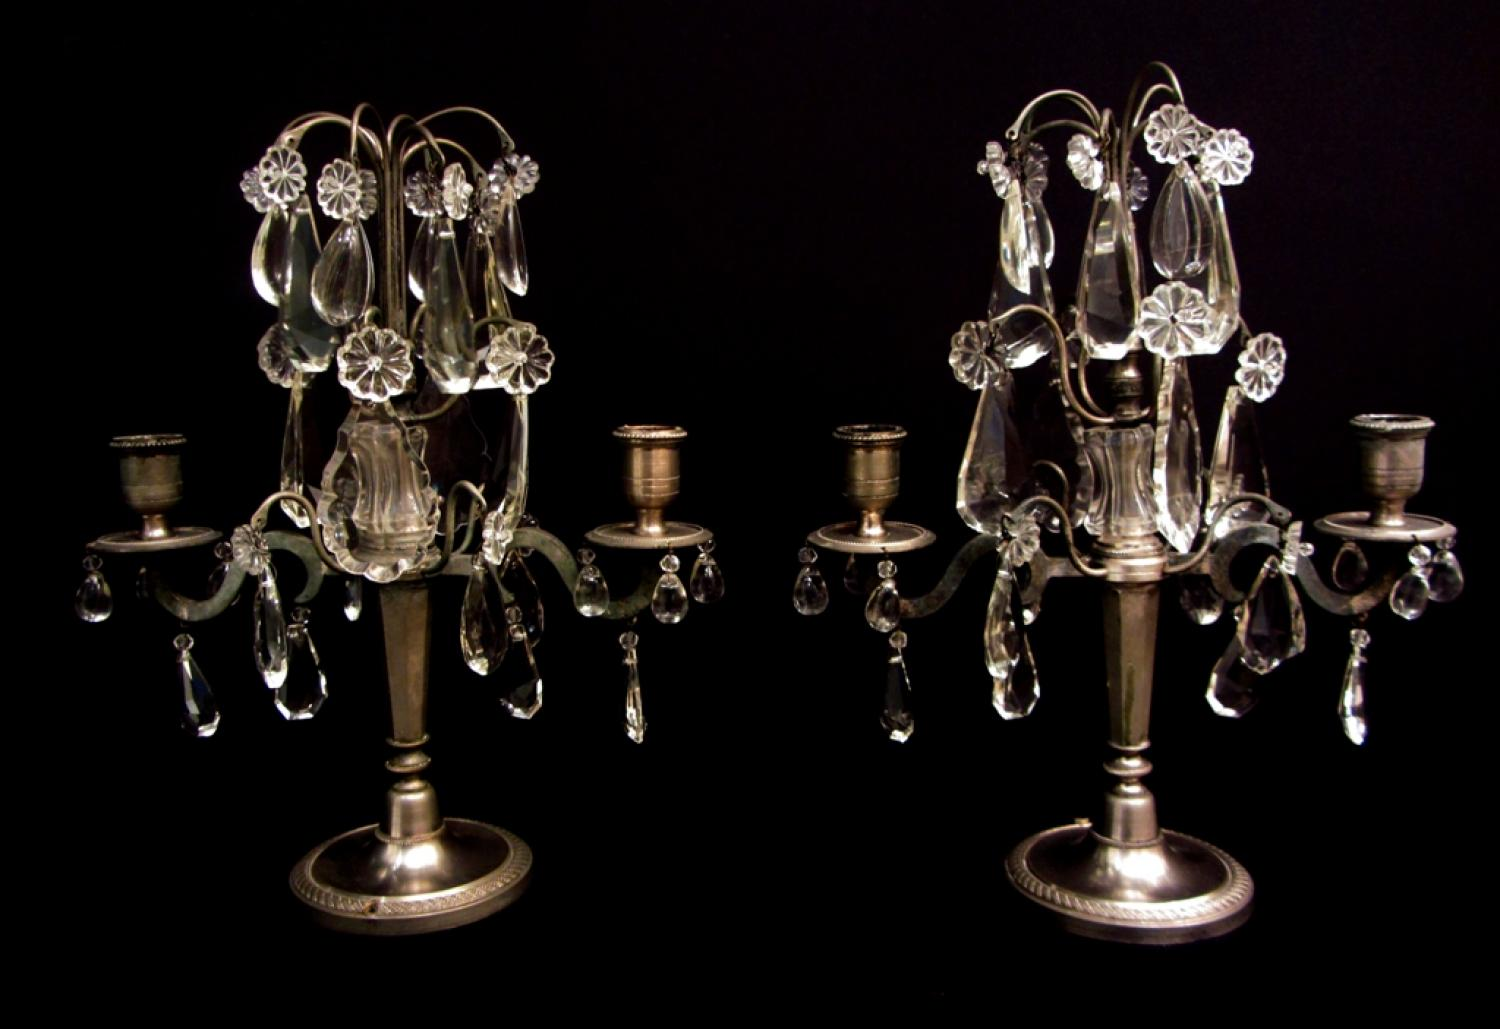 A pair of silvered and crystal girandoles